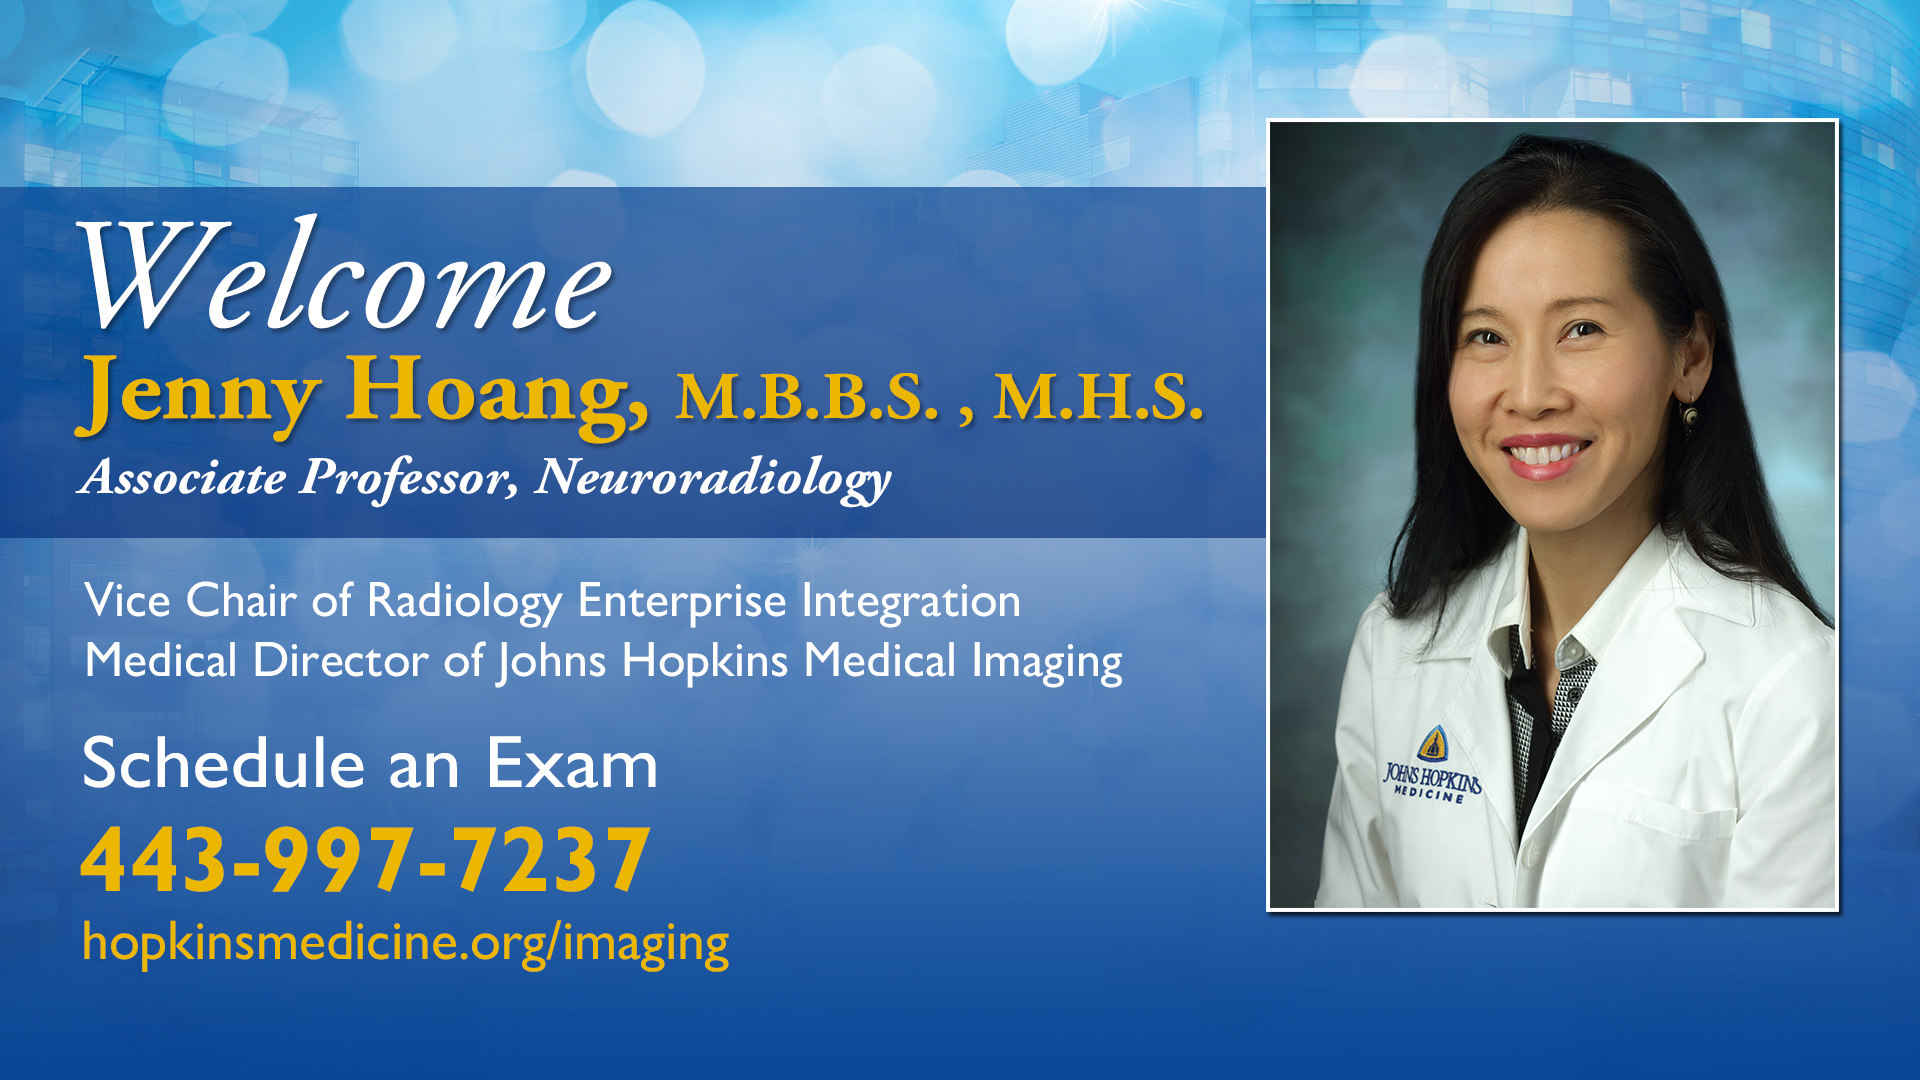 Jenny Hoang welcome screen